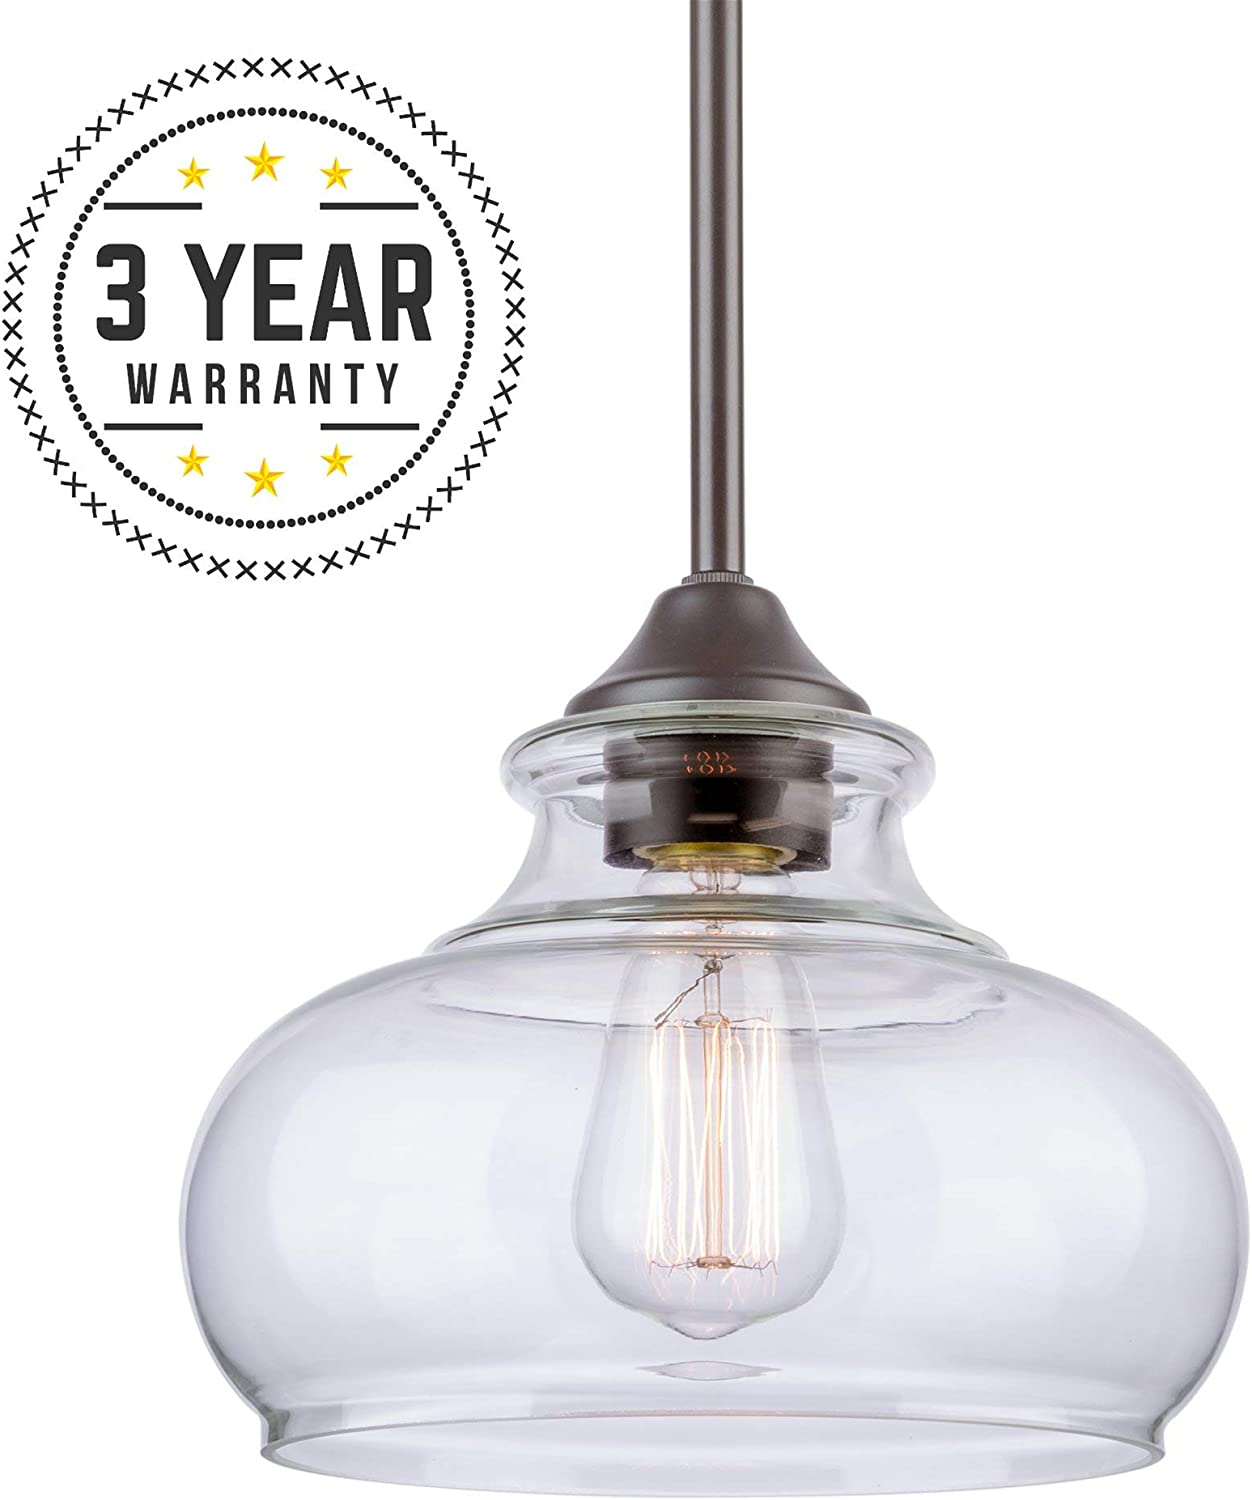 Kira Home Harlow 9 Modern Industrial Farmhouse Pendant Light with Clear Glass Shade, Adjustable Hanging Height, Oil Rubbed Bronze Finish